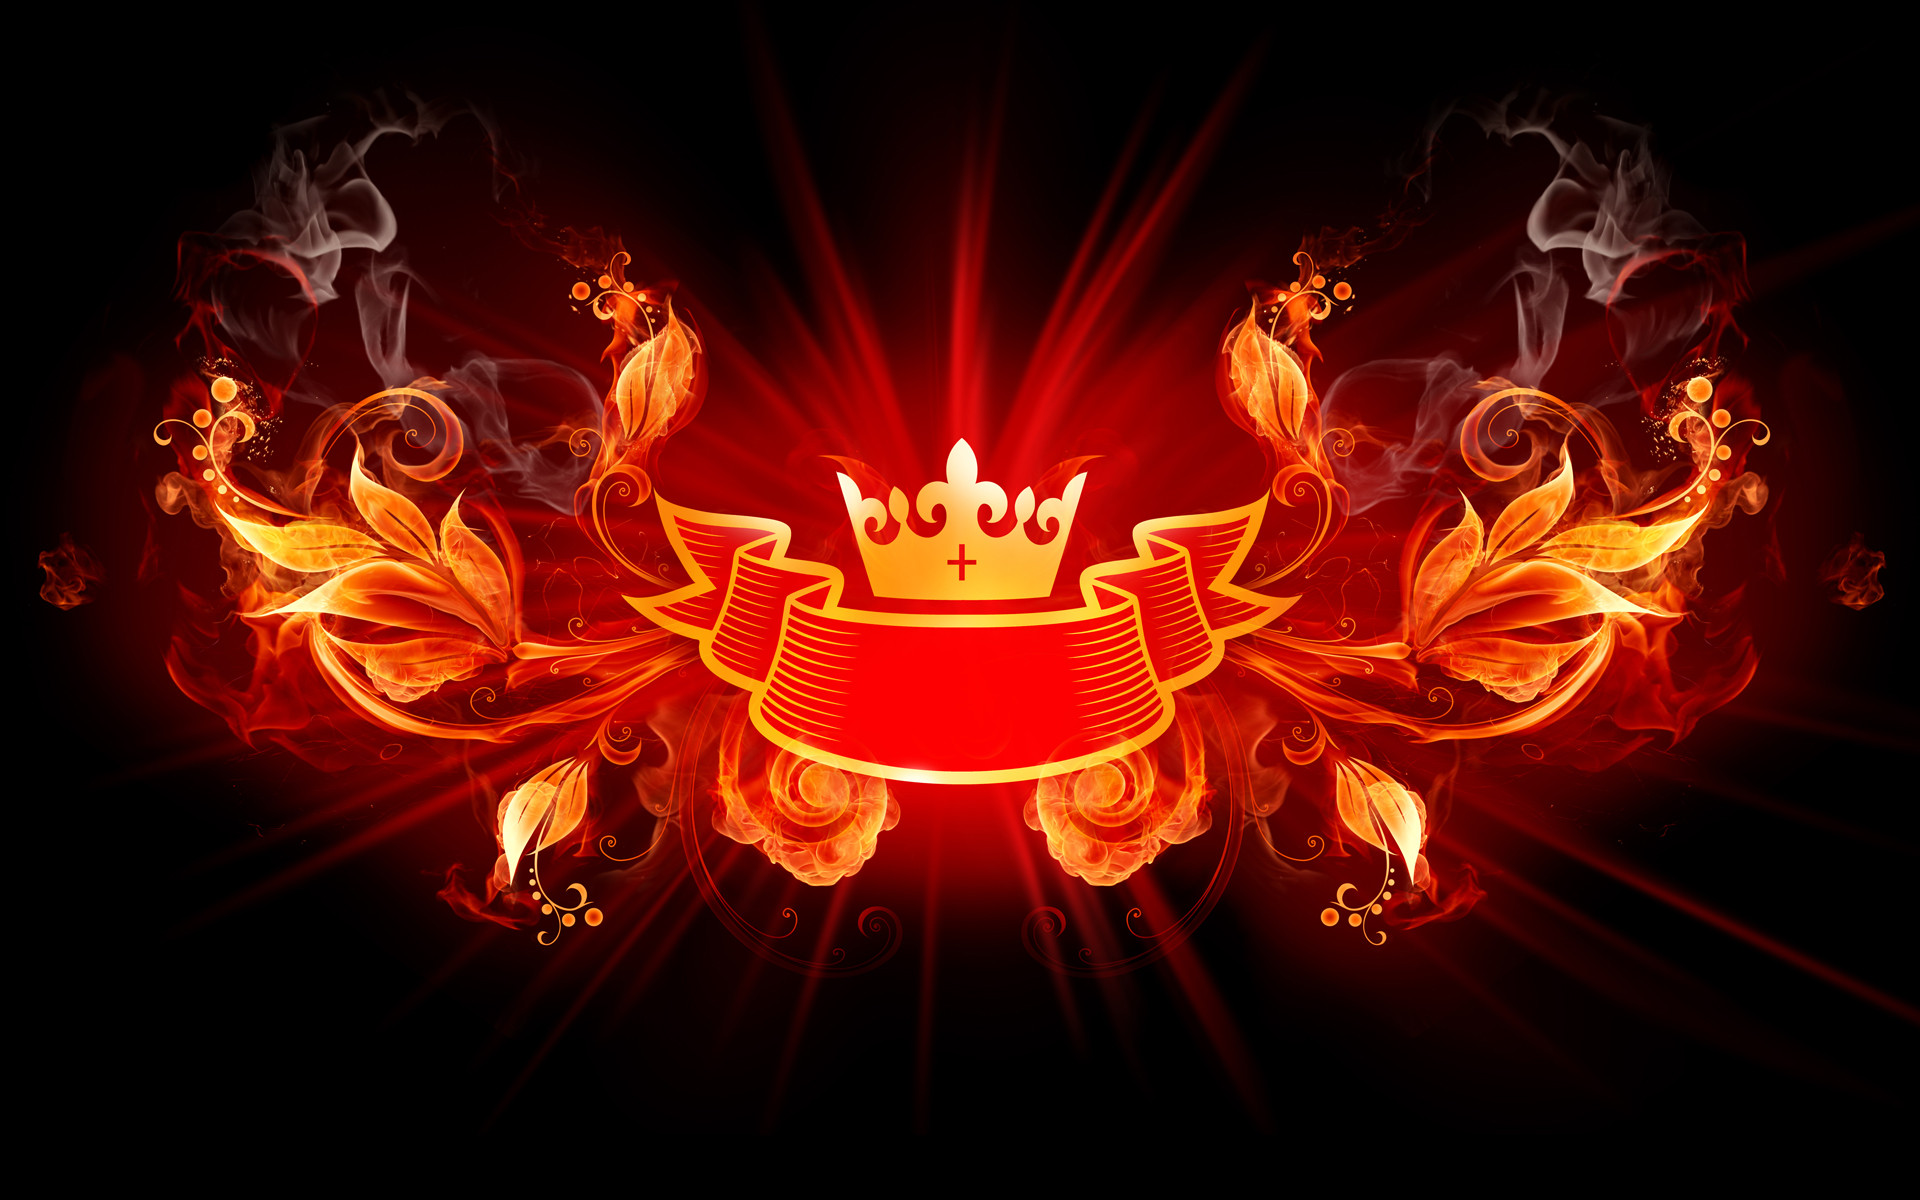 Free Crown Wallpaper